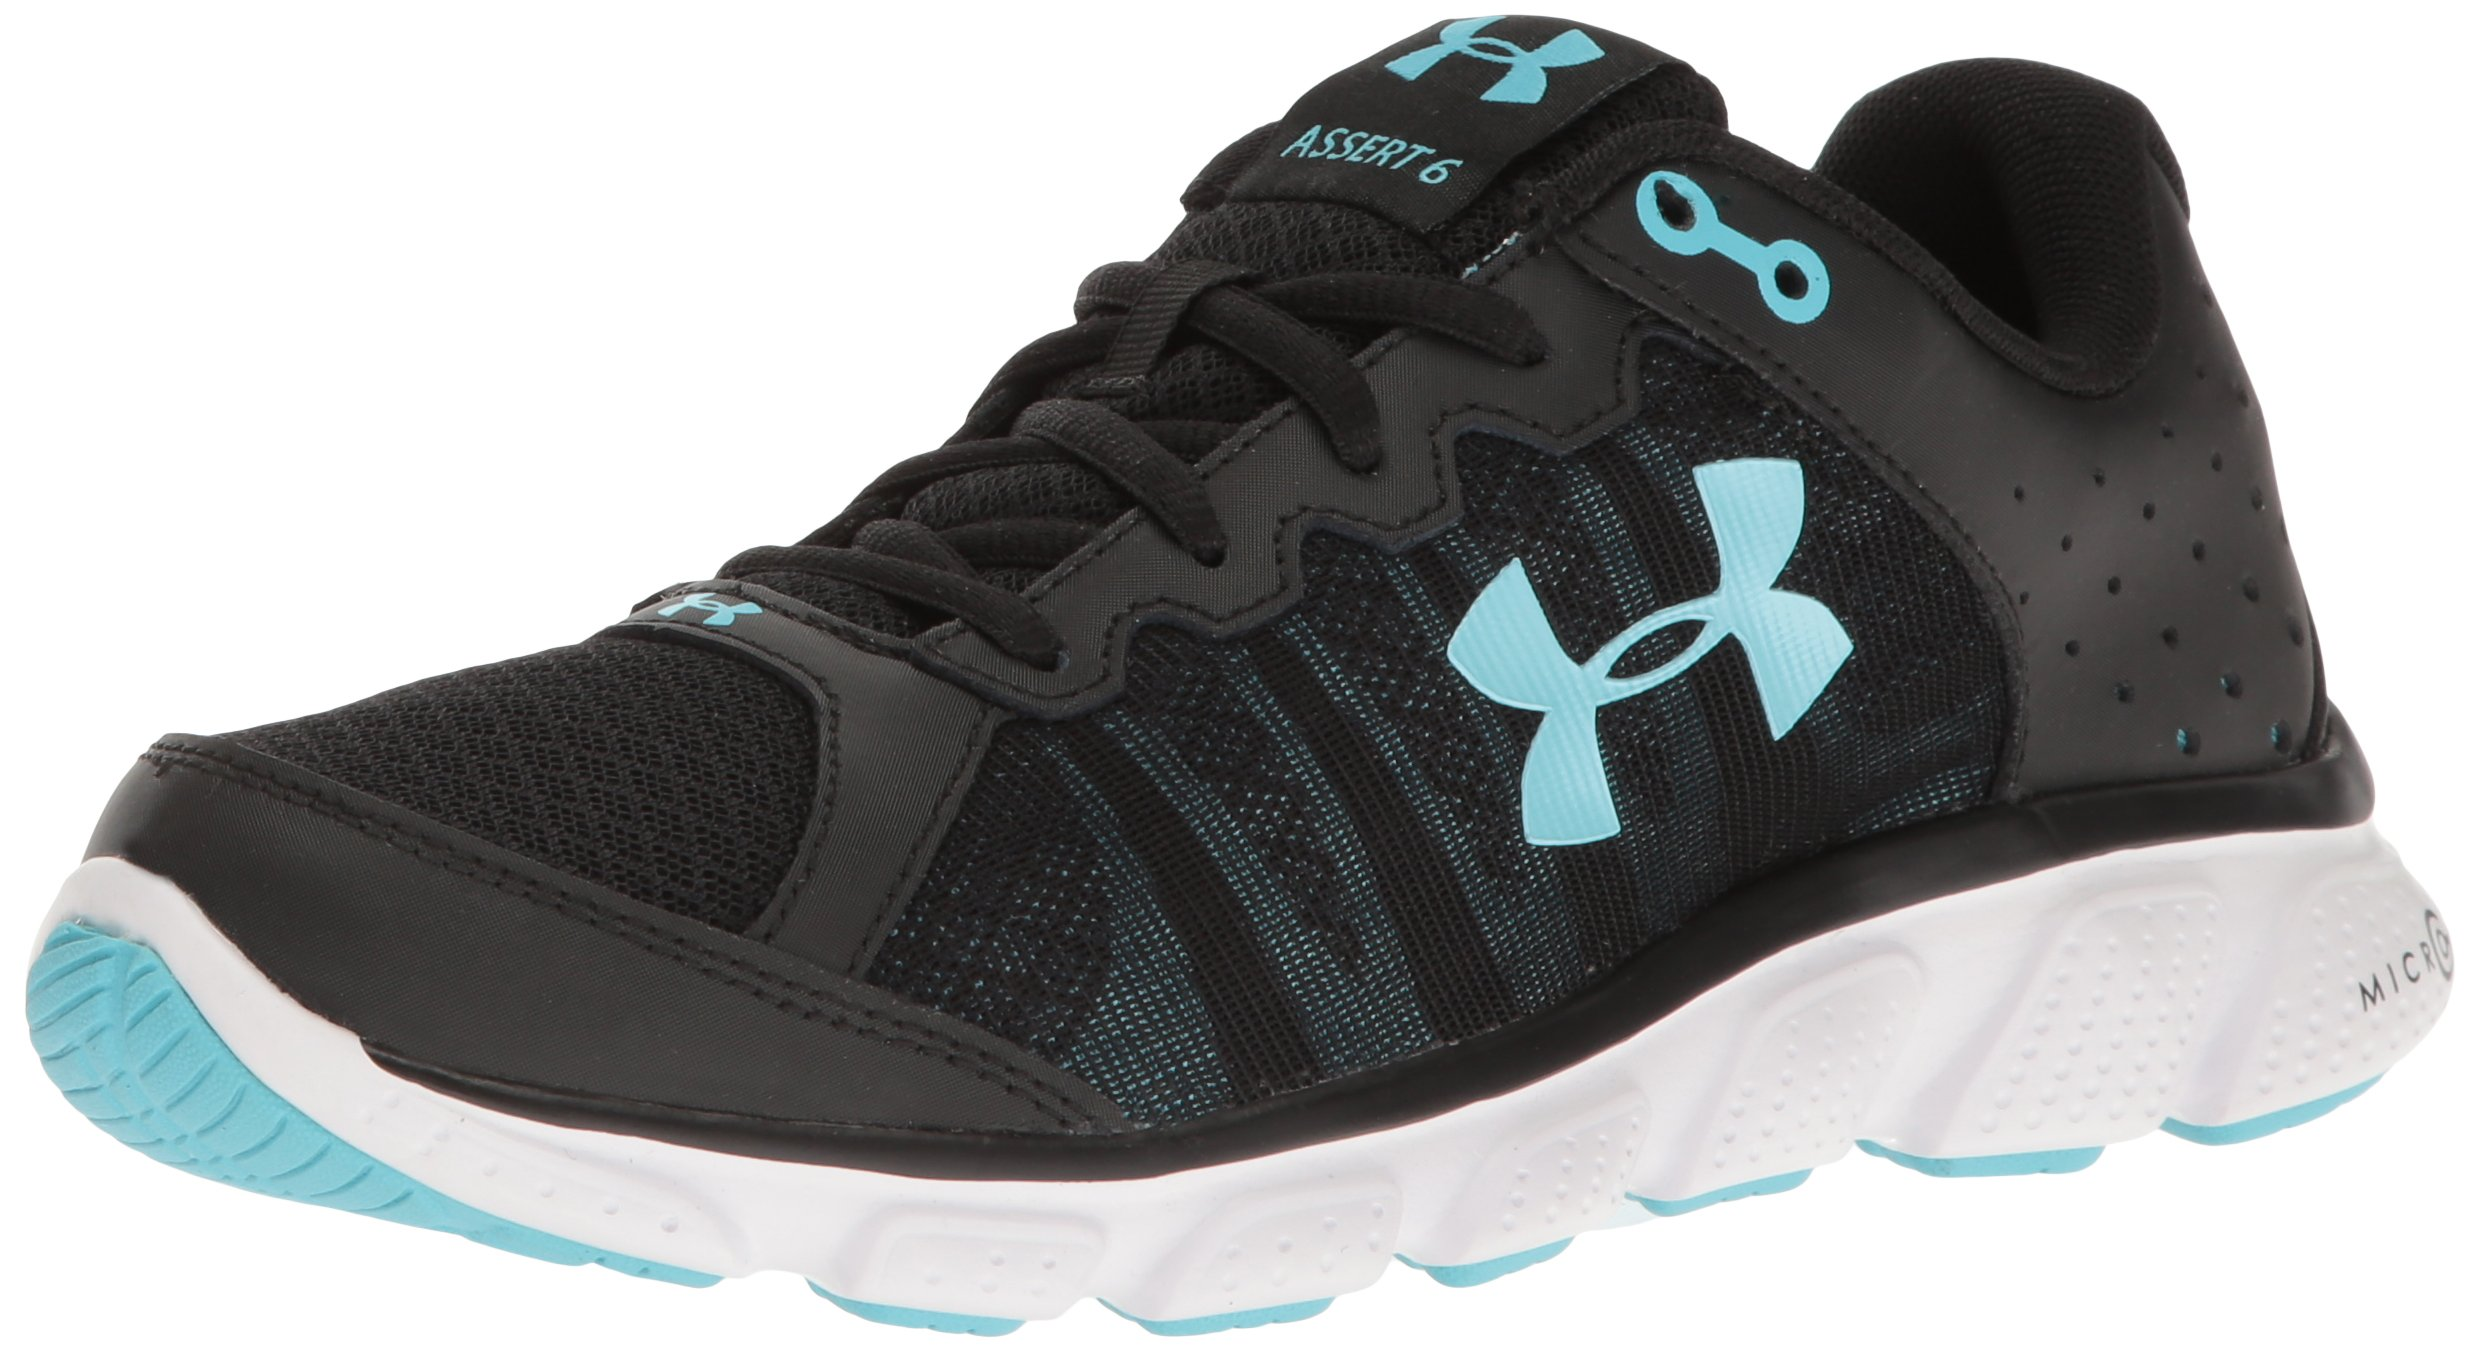 Under Armour Women's Micro G Assert 6 Running Shoe, Black (004)/White, 6.5 by Under Armour